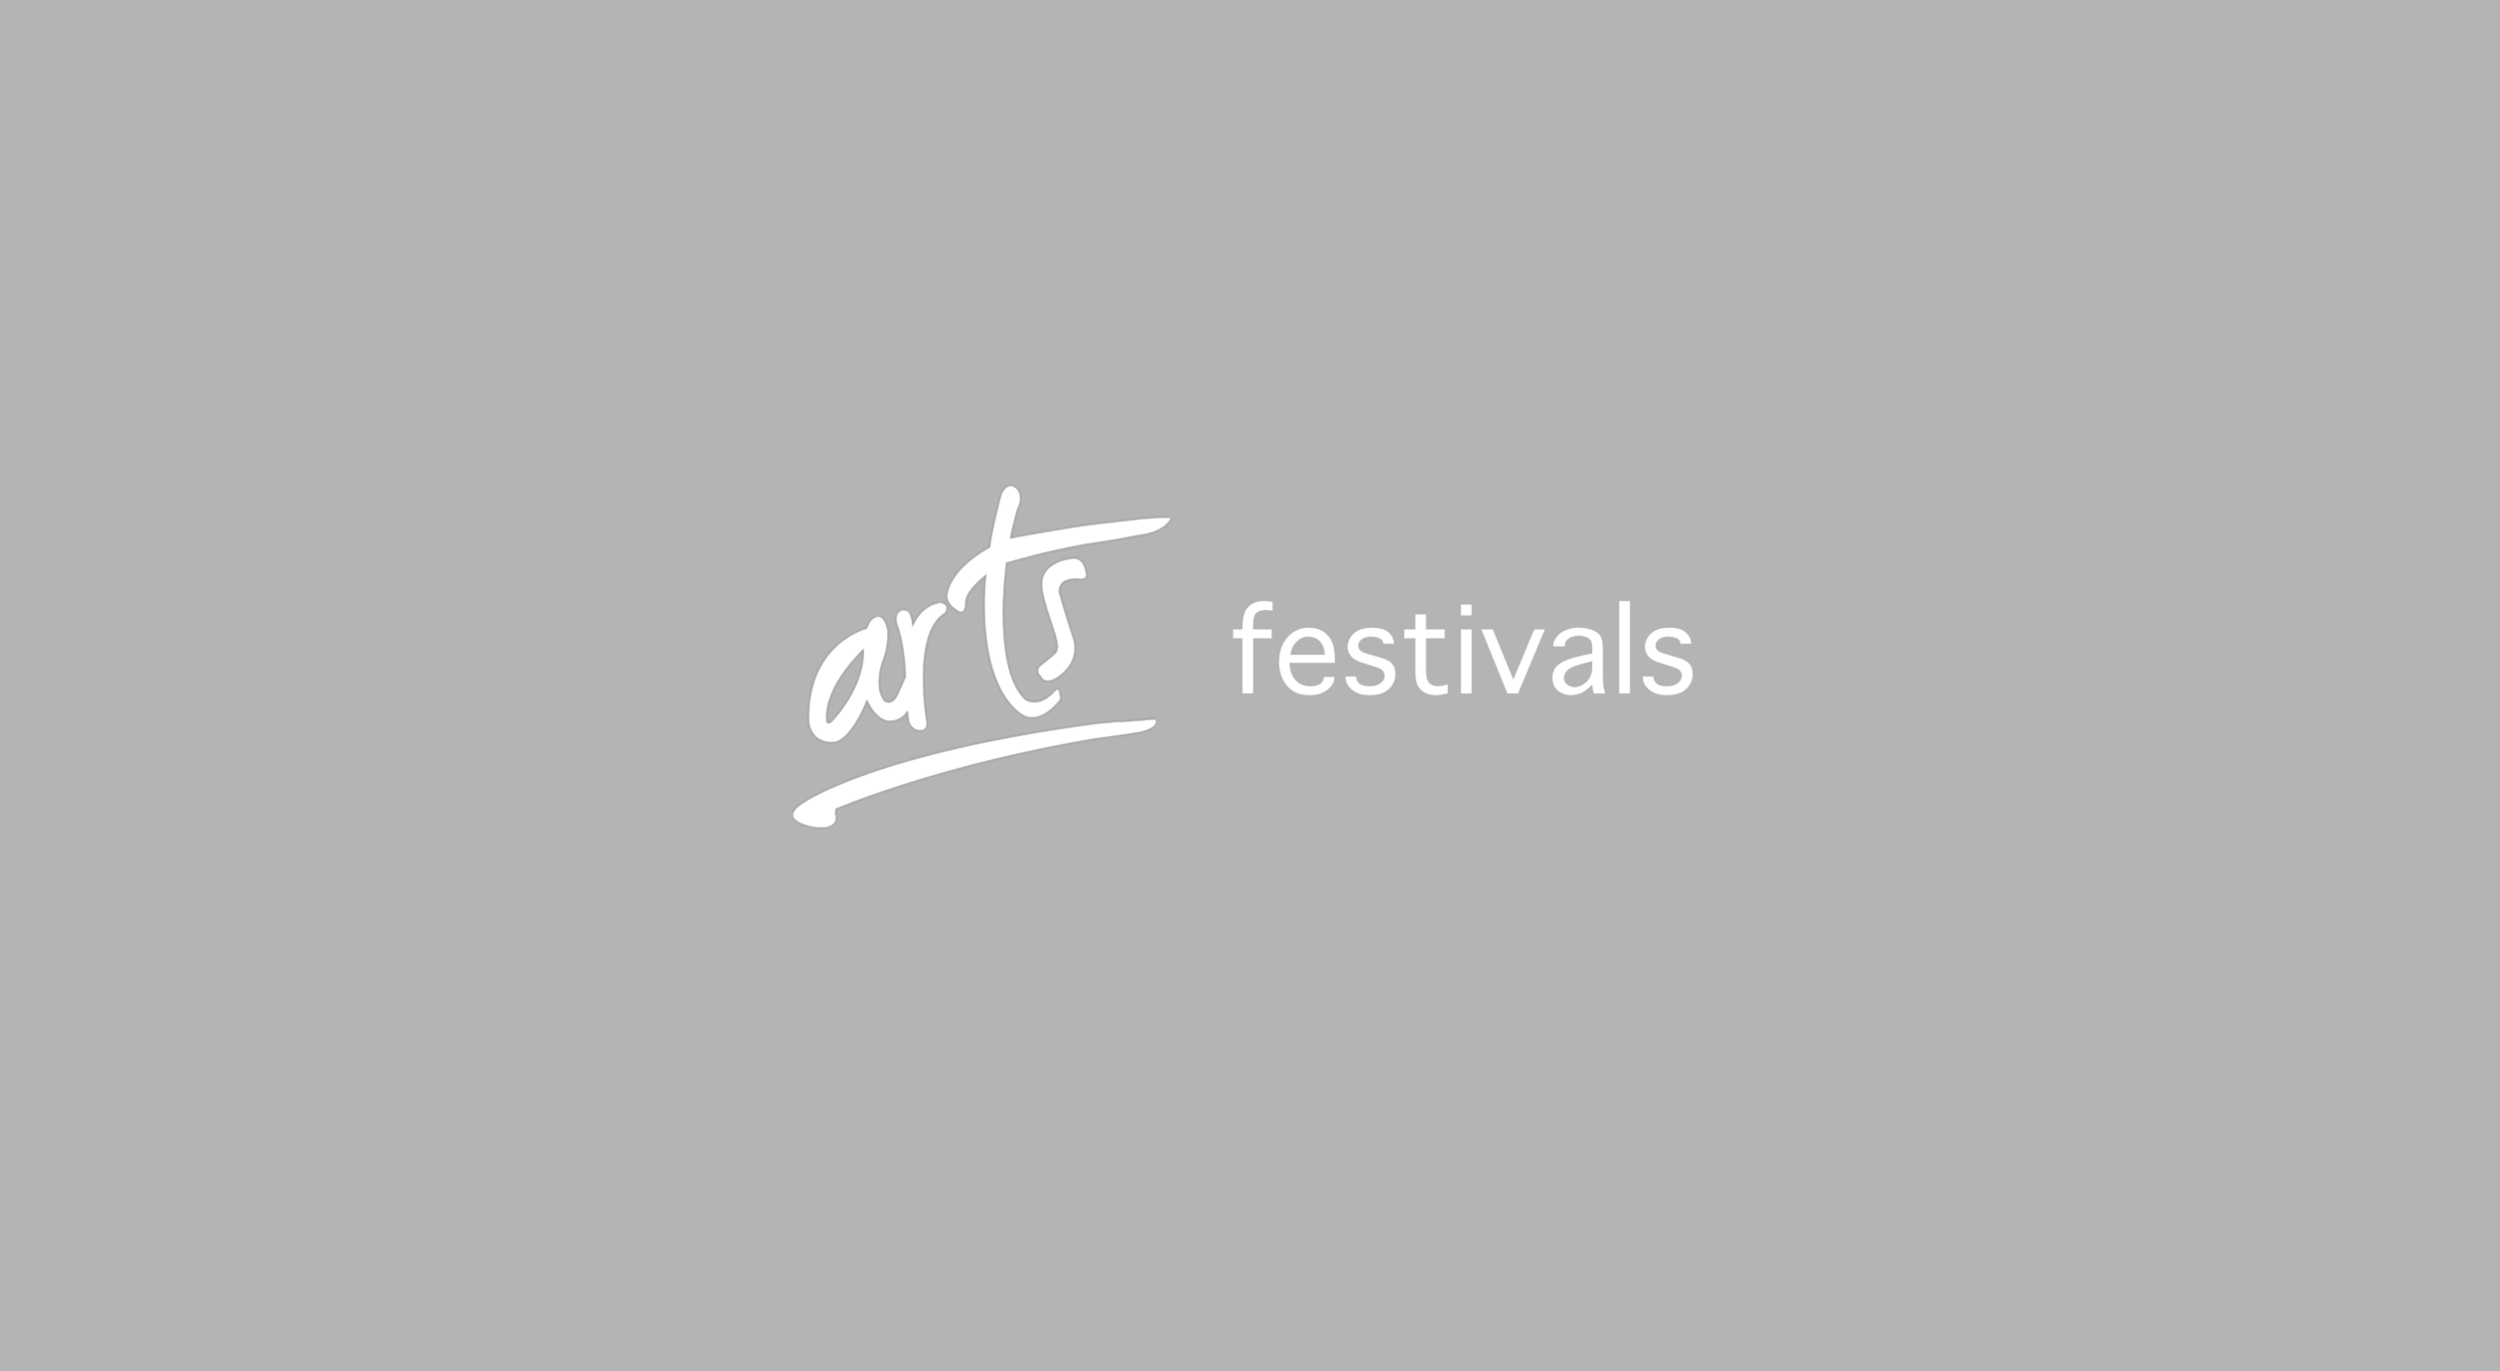 Arts Festivals is a subsidiary specialising in the creation of high quality, value for money live events and arts festivals